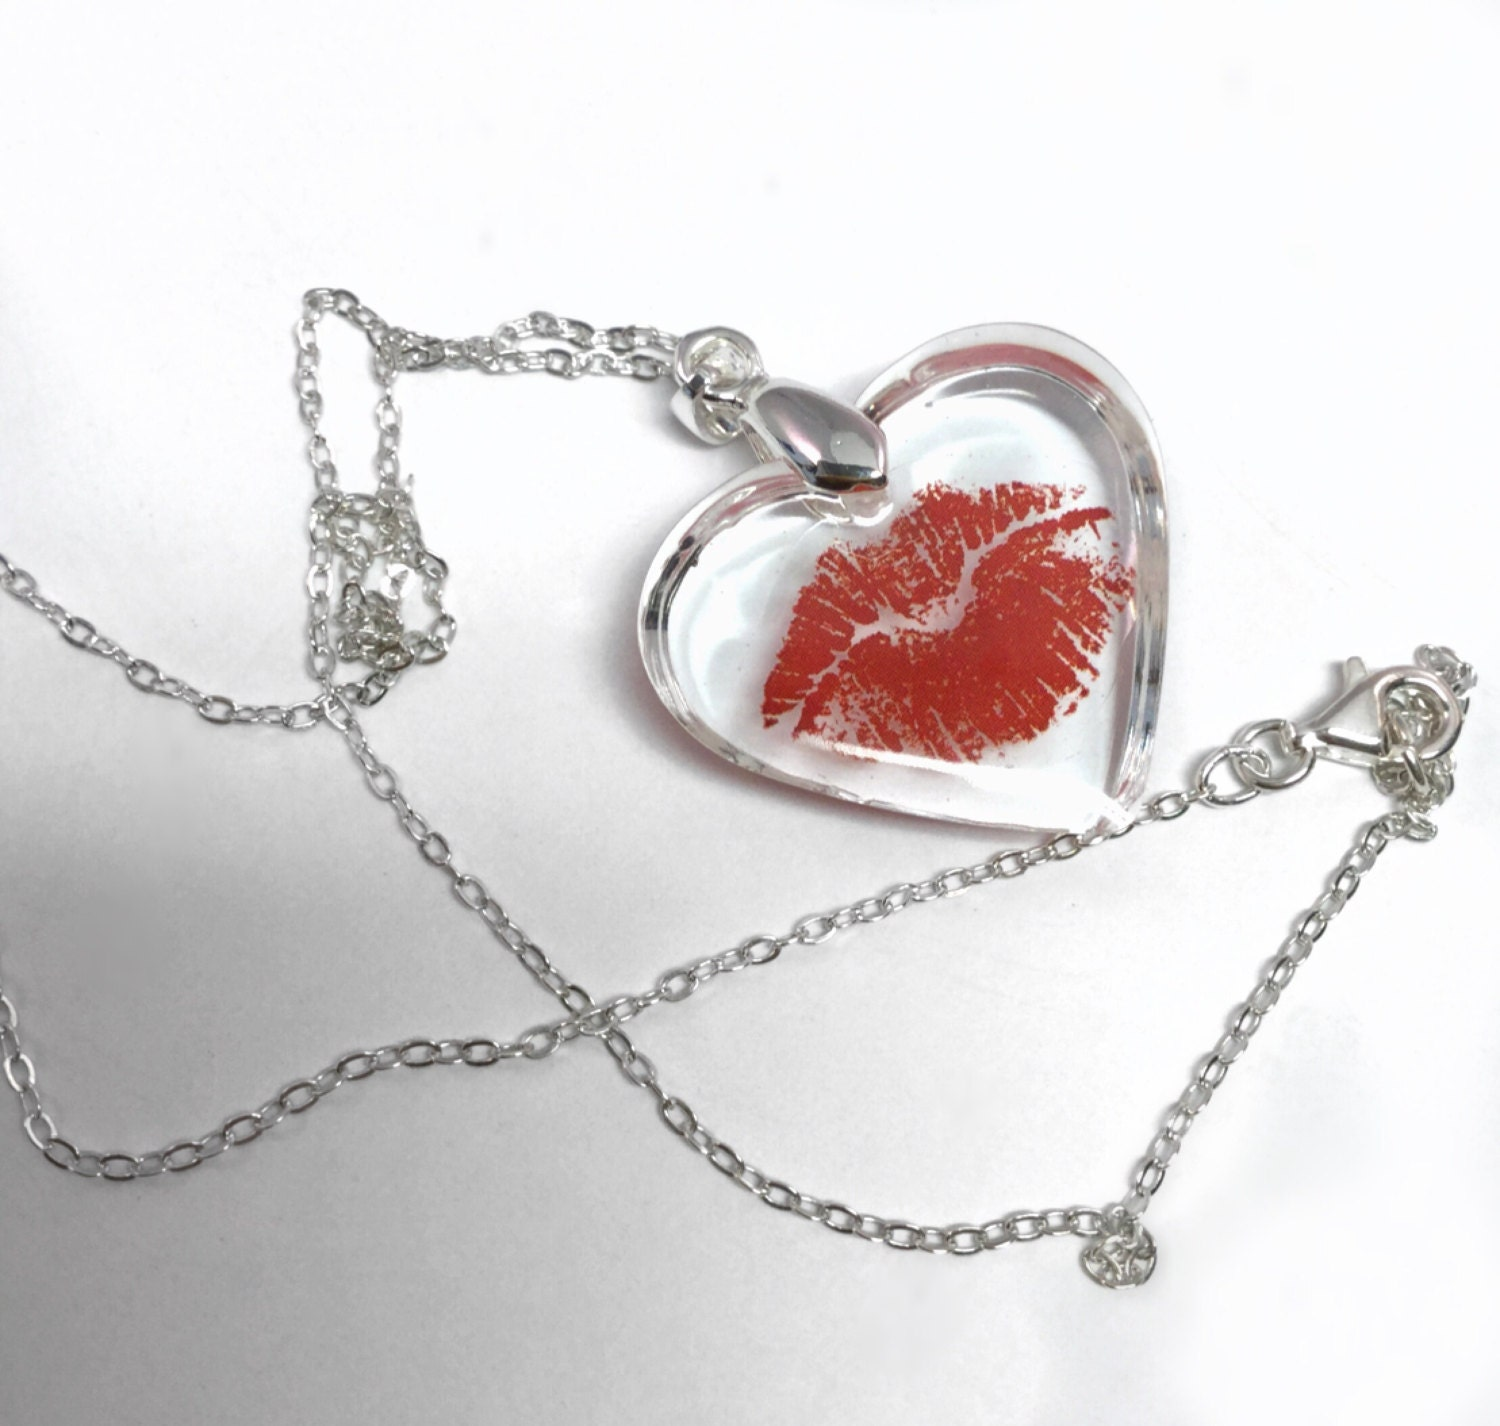 Clear Resin Heart Pendant Featuring Flirty Pouty Red Lips